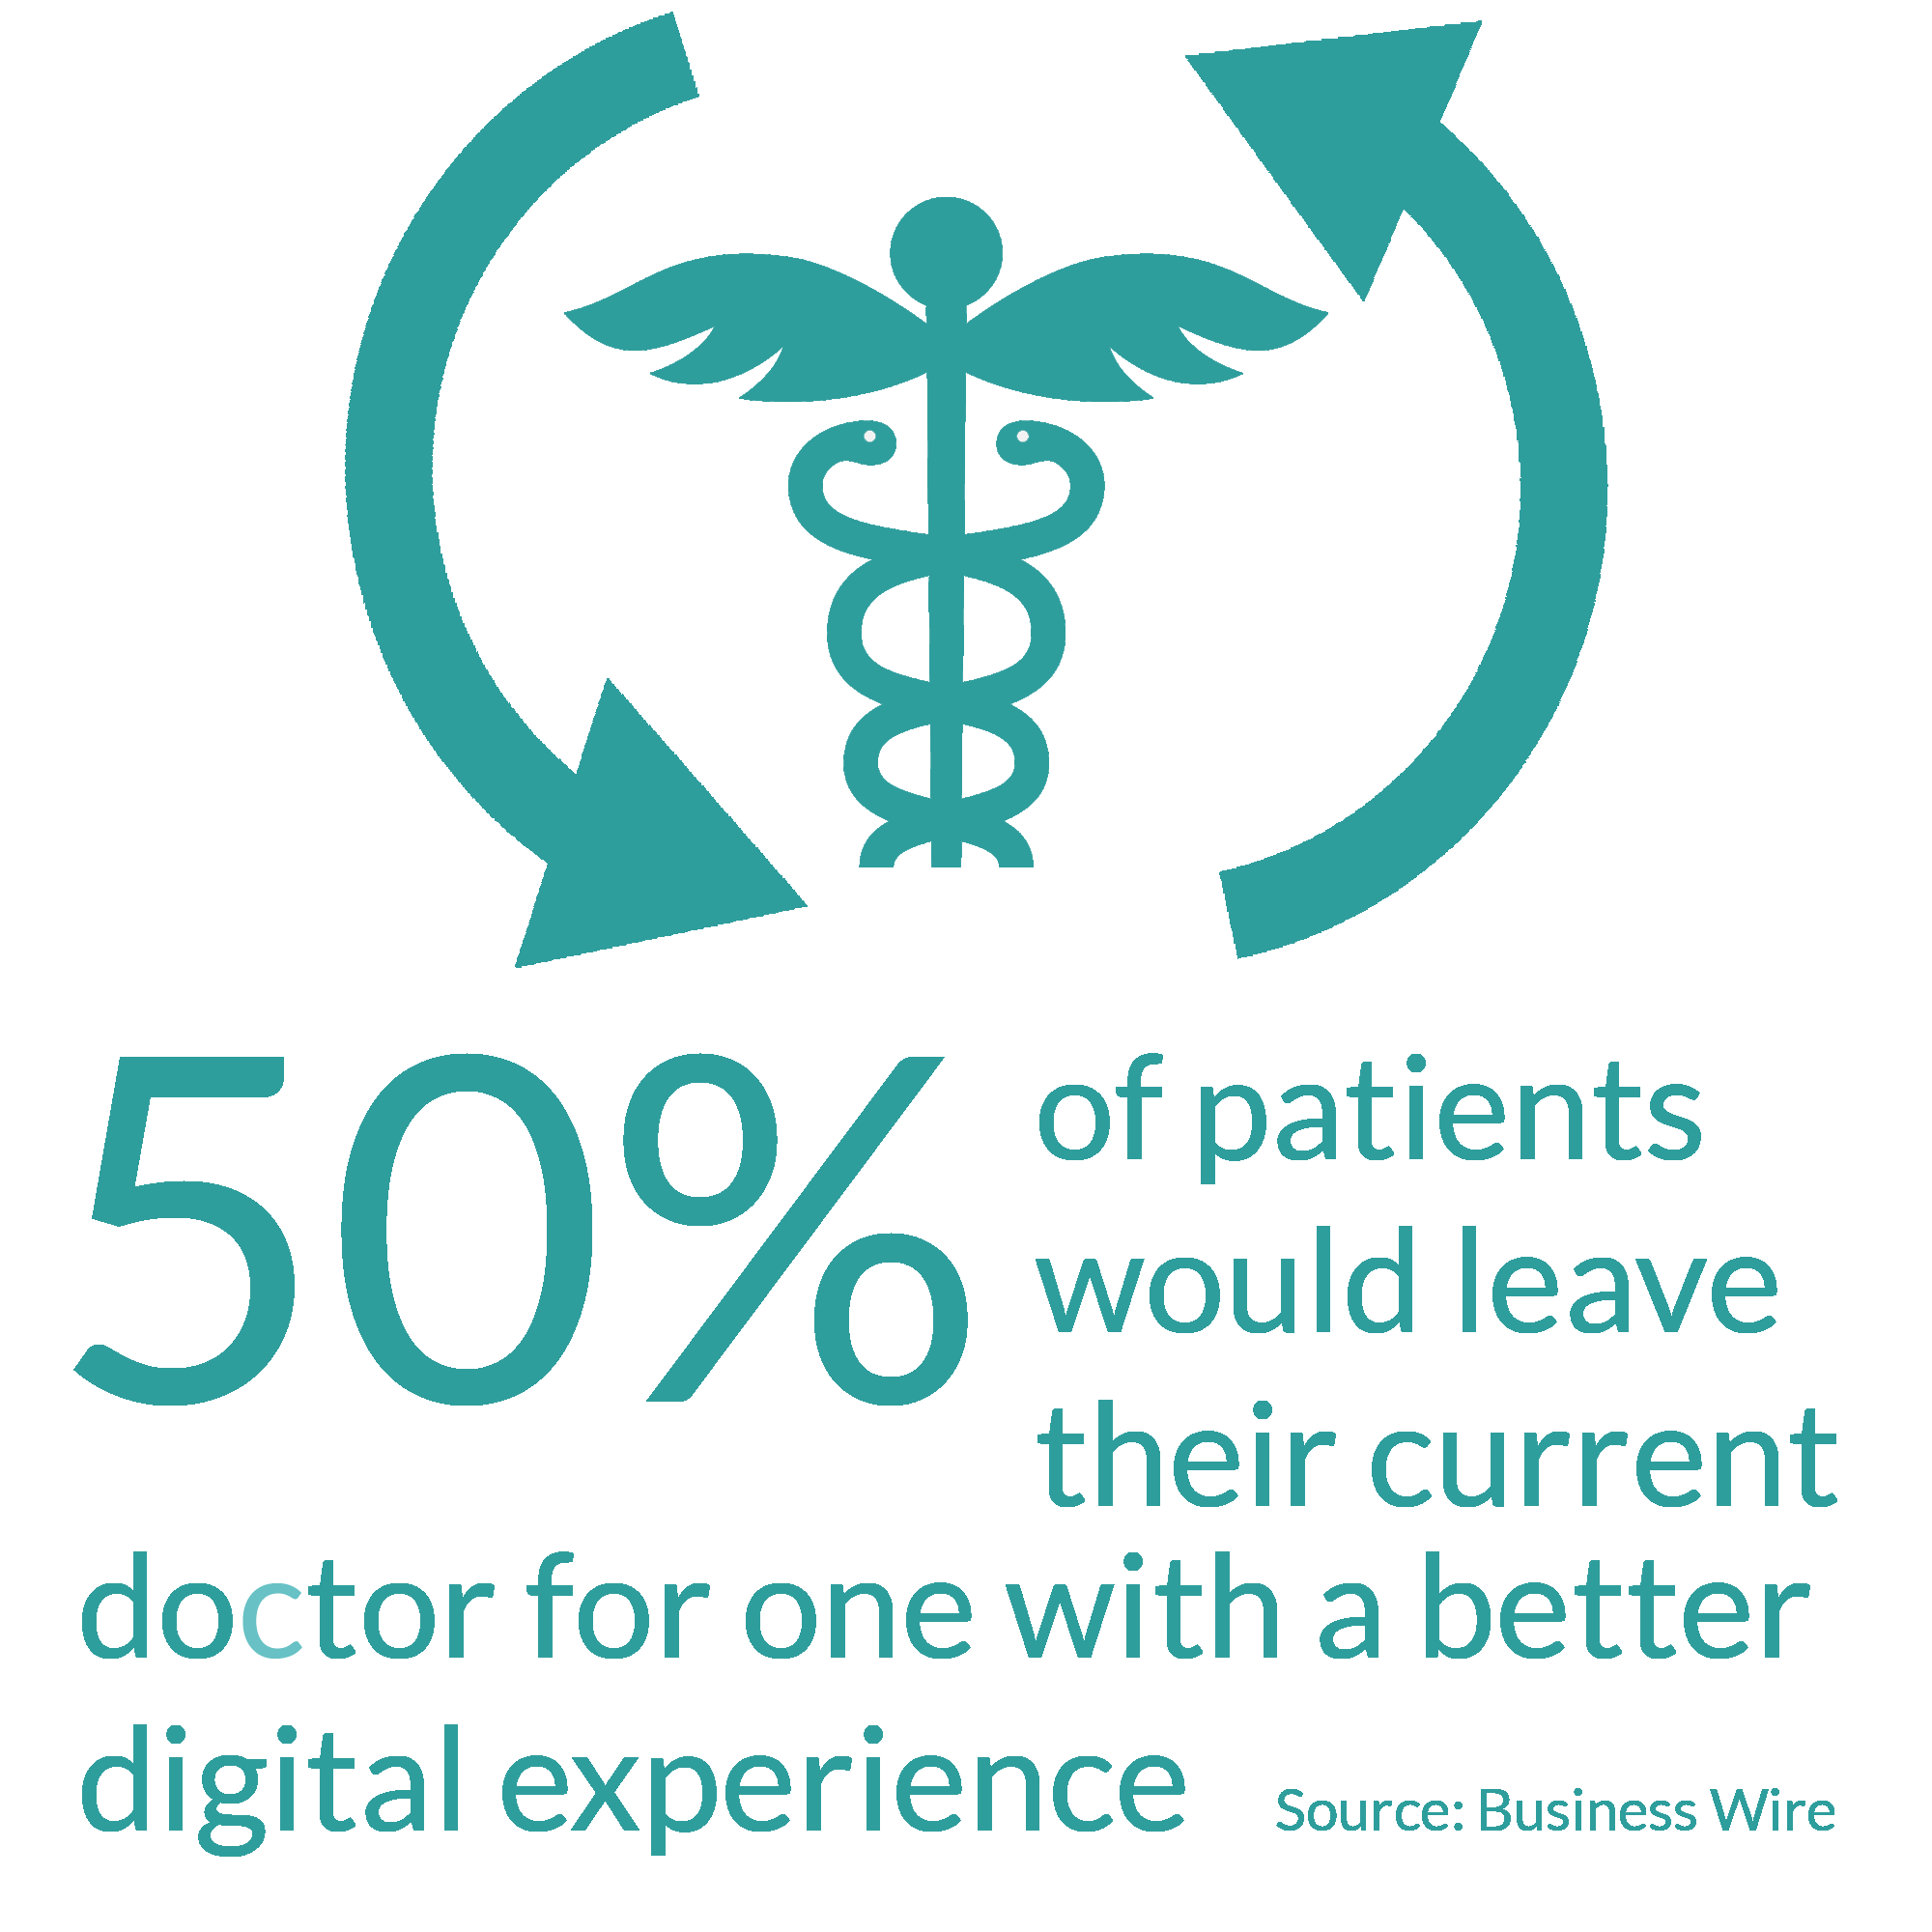 50% of patients would leave their current doctor for one with a better digital experience